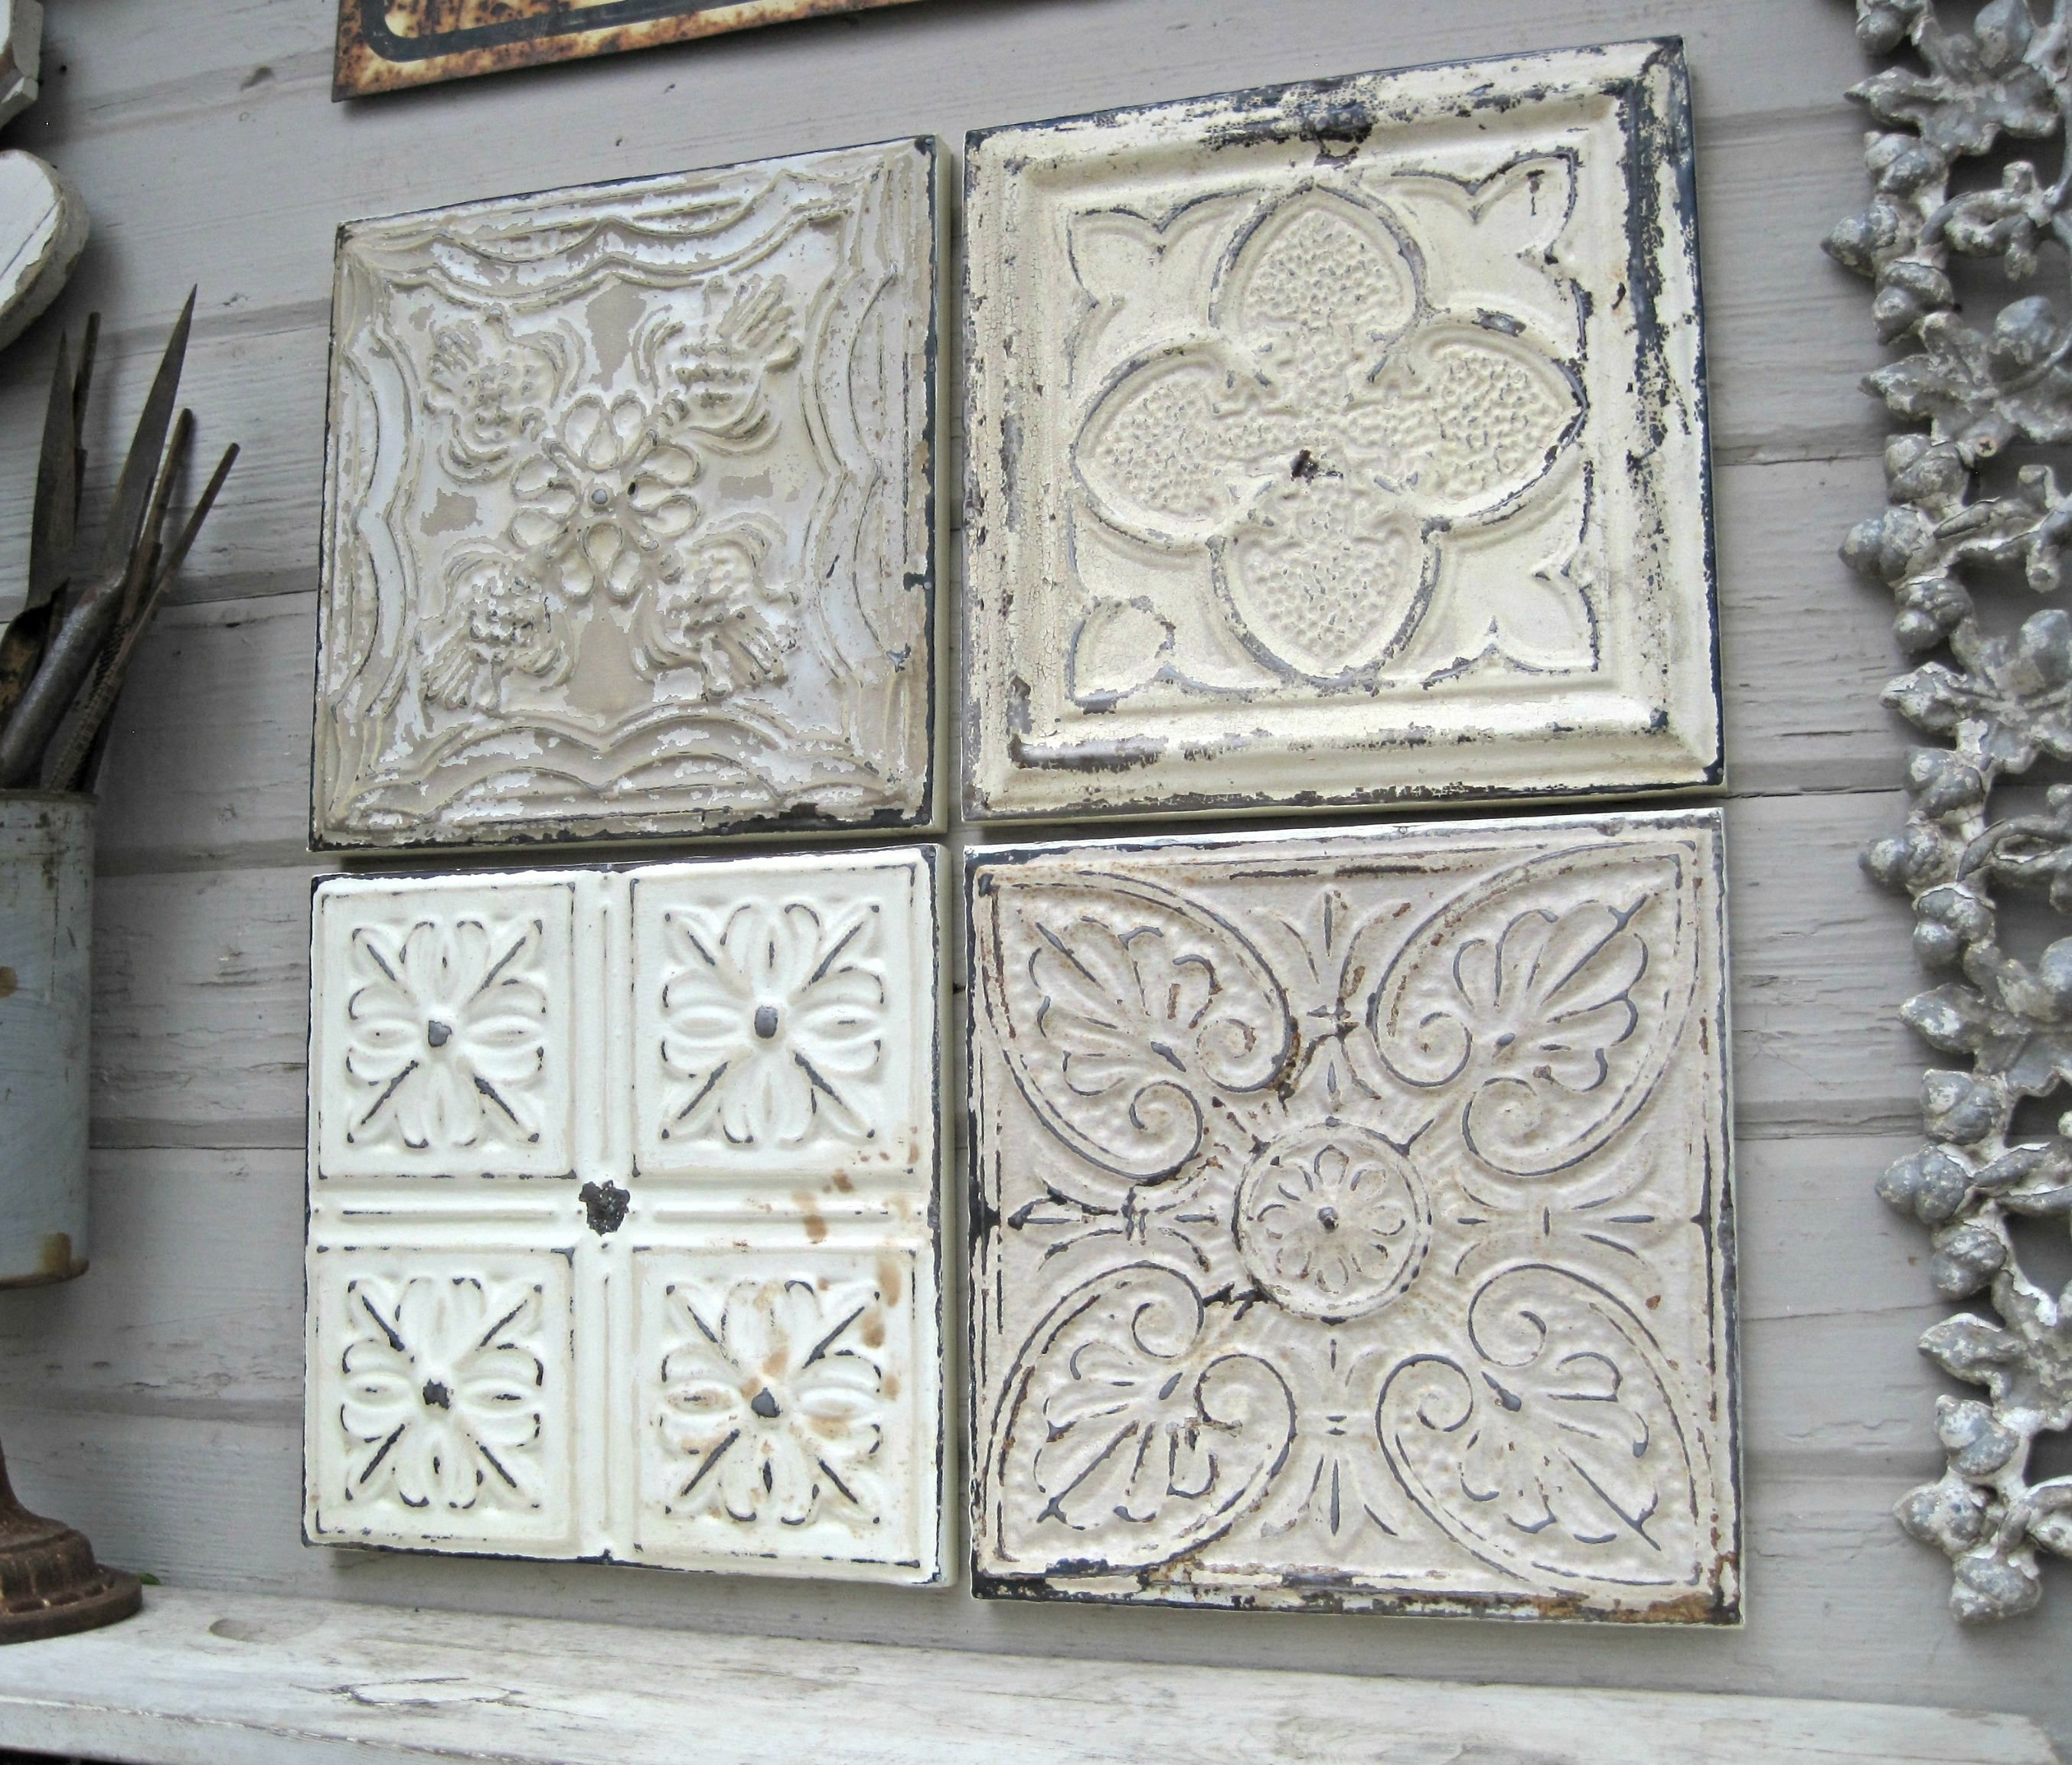 Rustic Wall Decor, Antique Architectural Salvage, 4 Framed Ceiling Within Most Up To Date Tin Wall Art (Gallery 7 of 20)